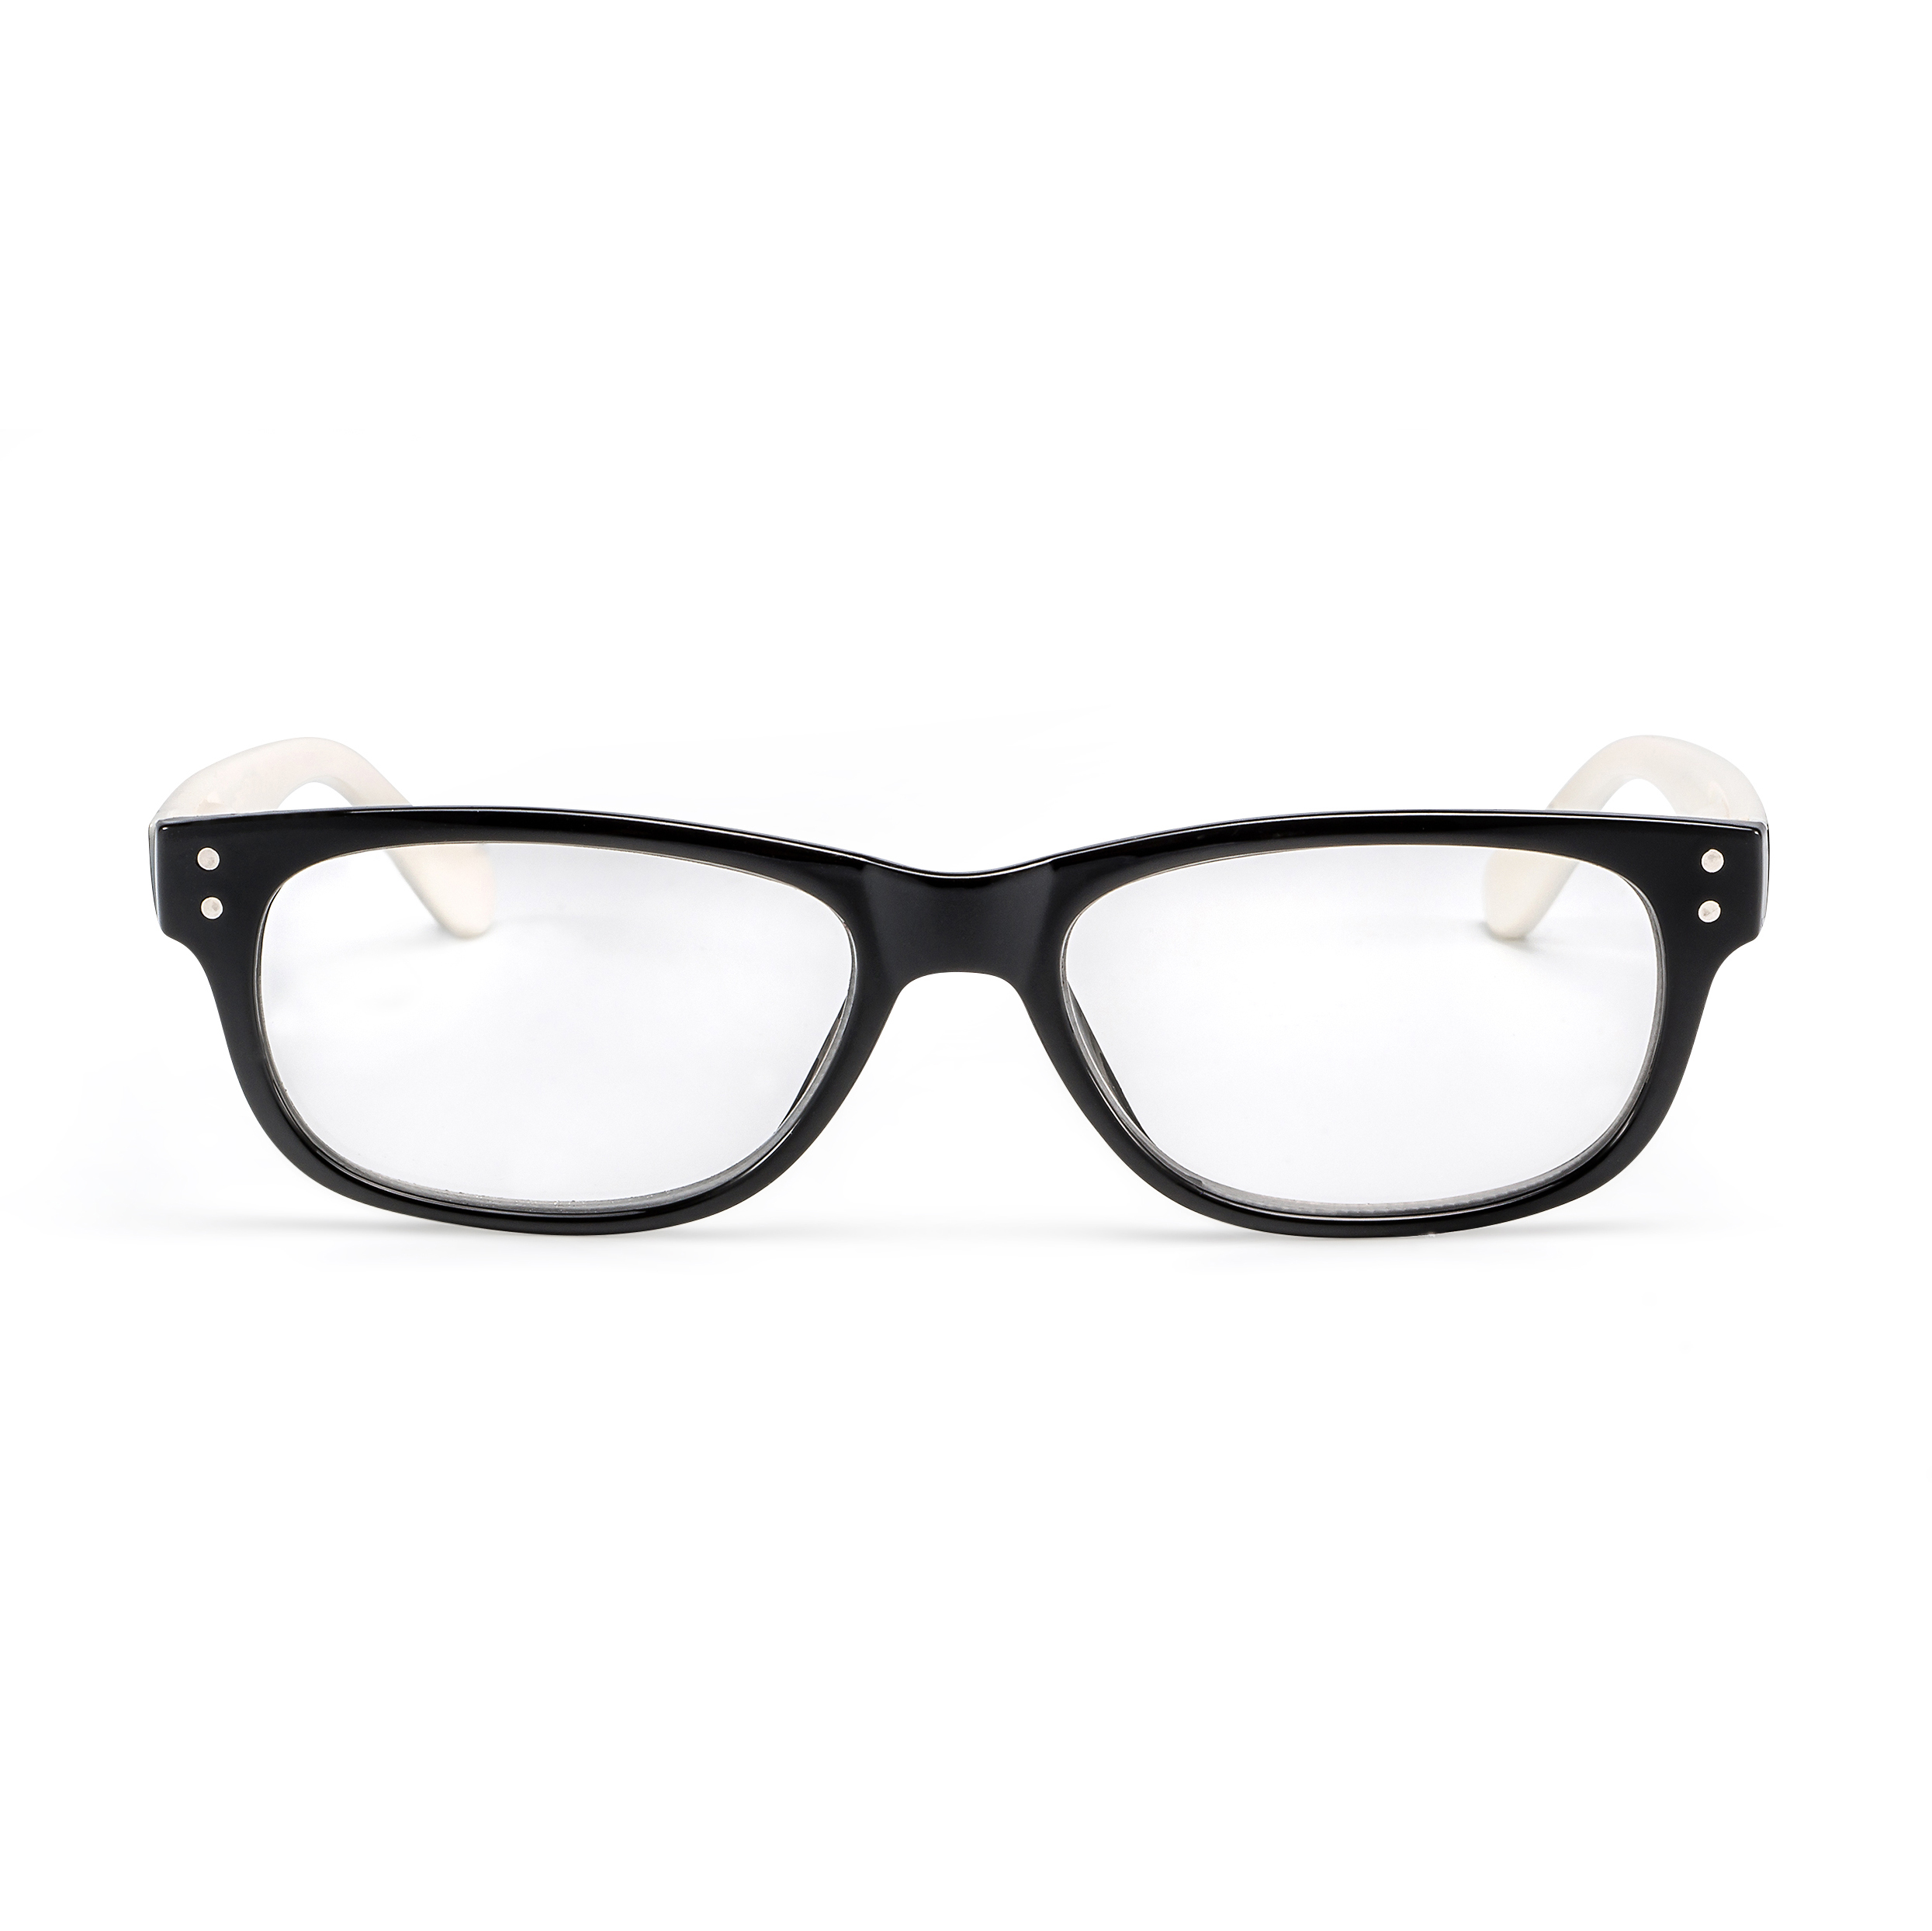 Front view reading glasses San Francisco white